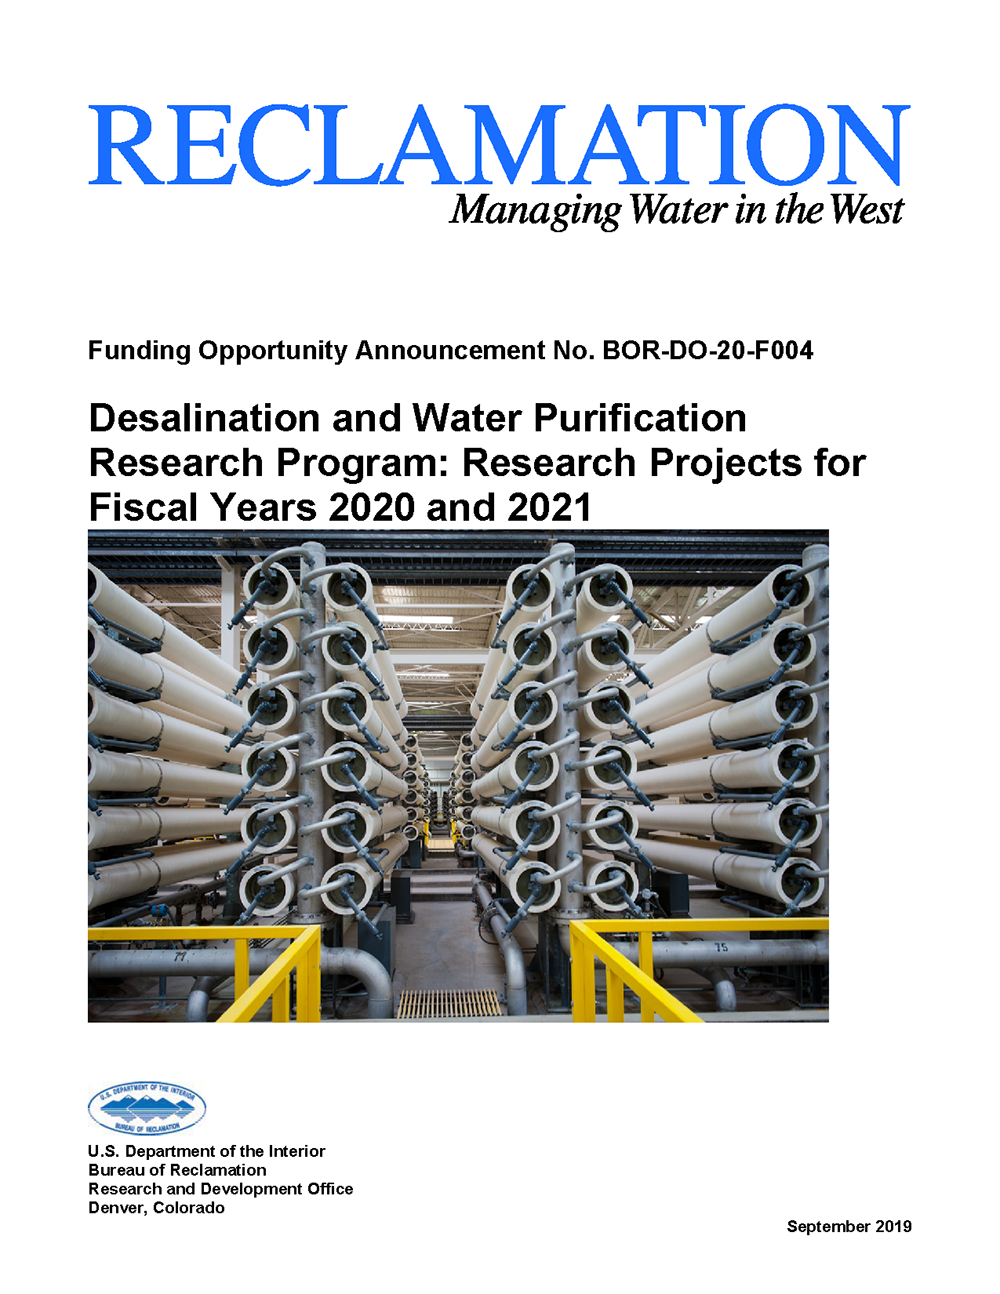 Desalination and Water Purification Research Program funding opportunity